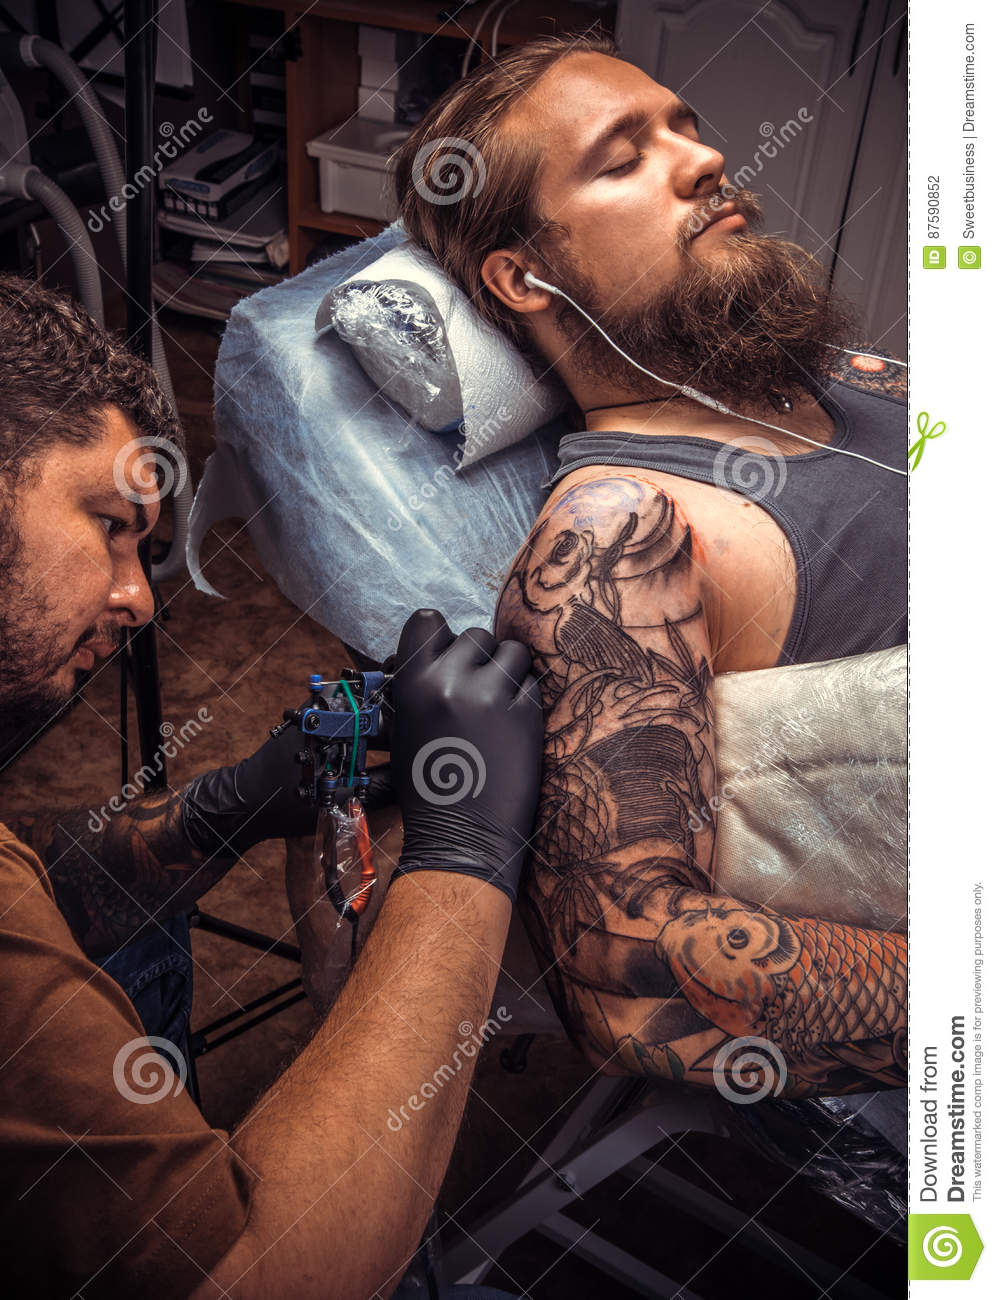 Tattoo master doing tattoo in tattoo parlor royalty free for Working man tattoo